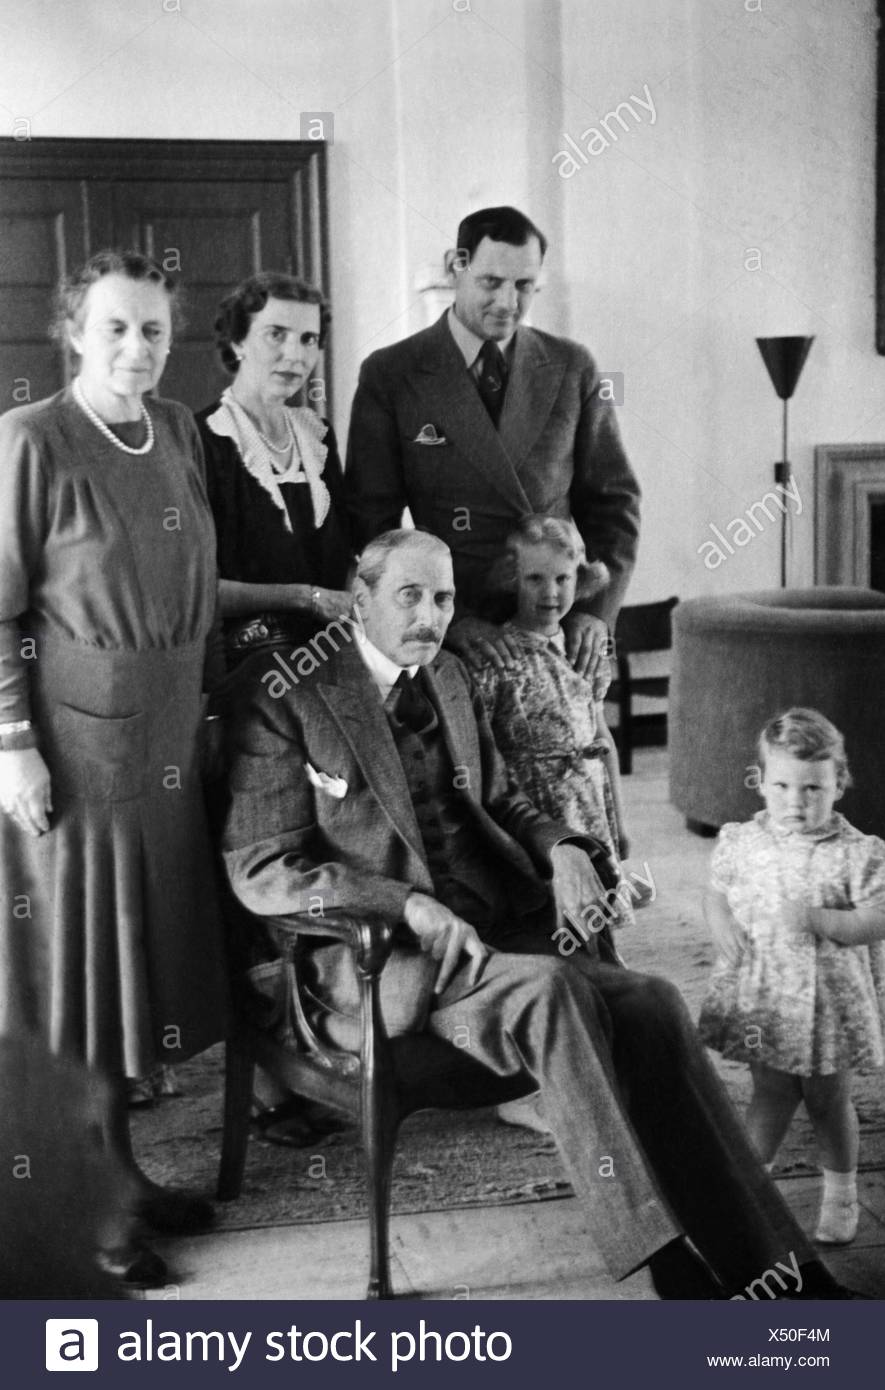 Christian X, 26.9.1870 - 20.4.1947, King of Denmark 1912 - 1947, group picture, with his wife Alexandrine, Crown Prince Frederik, Crown Princess Ingrid and their daughters Margrethe and Benedikte Astrid Ingeborg Ingrid, 1946 / 1947, Additional-Rights-Clearances-NA - Stock Image